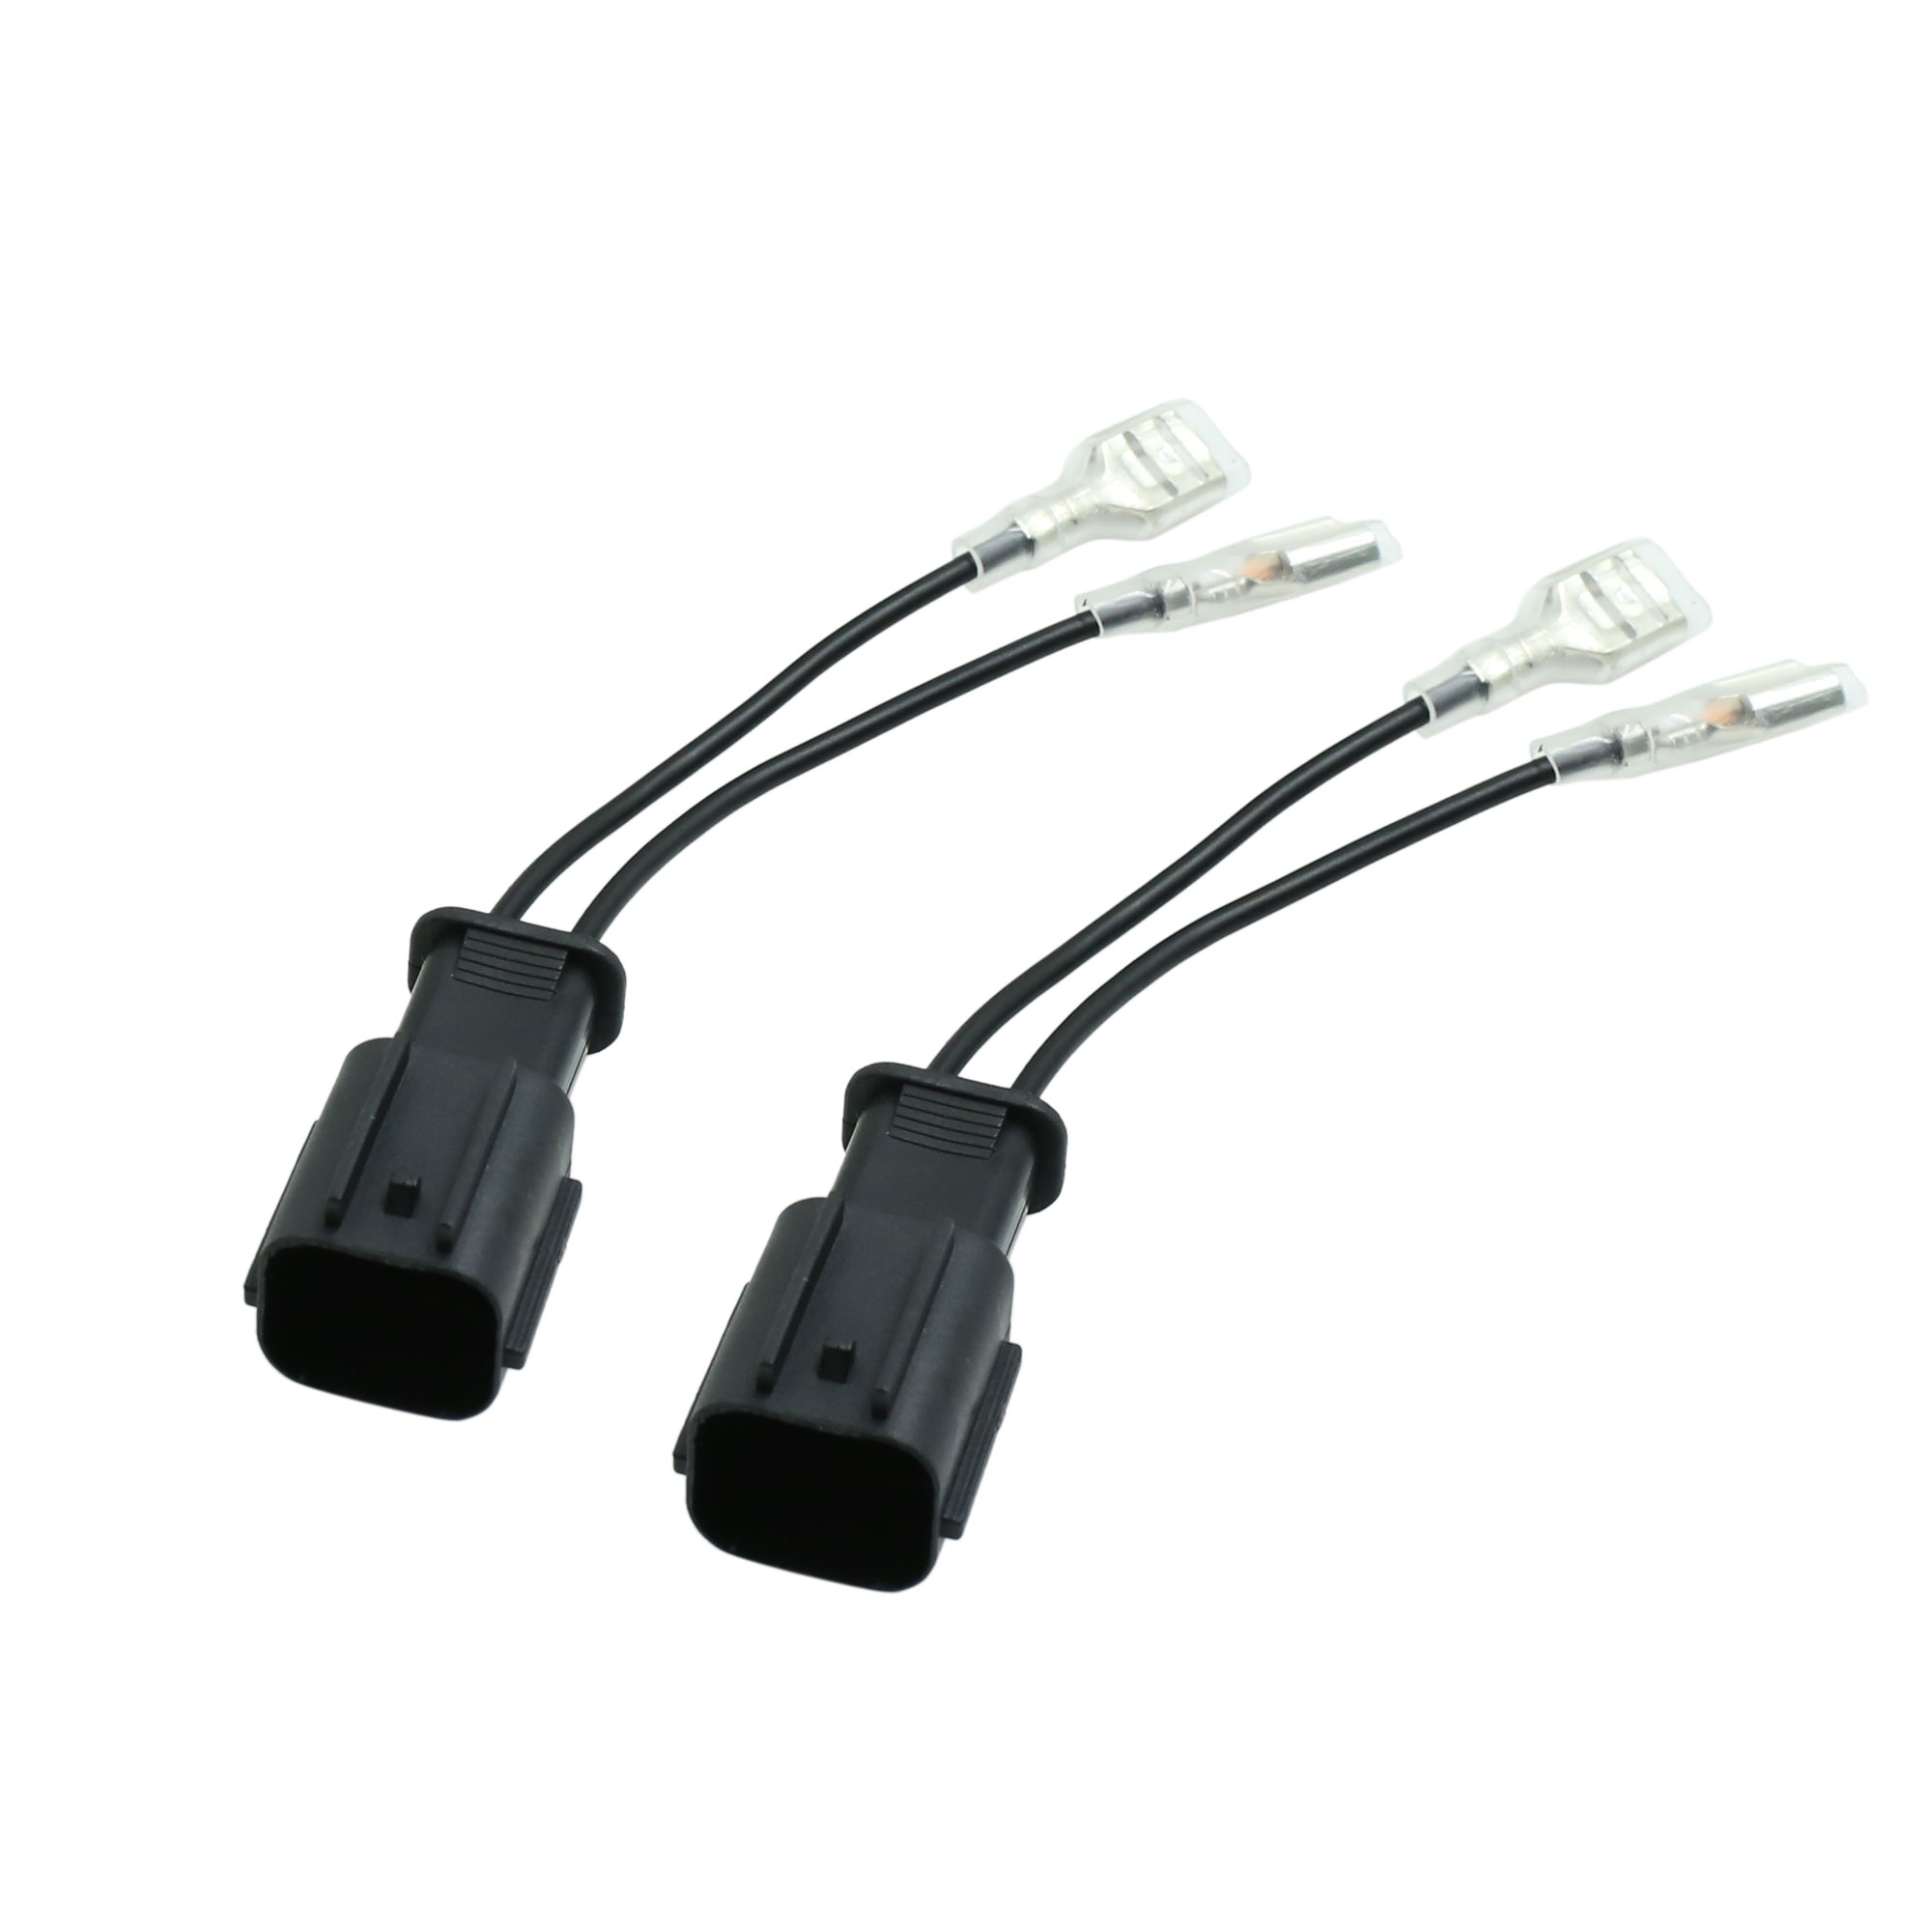 small resolution of dc 12v car audio speaker wire harness adapter connector for buick excelle 2pcs walmart canada